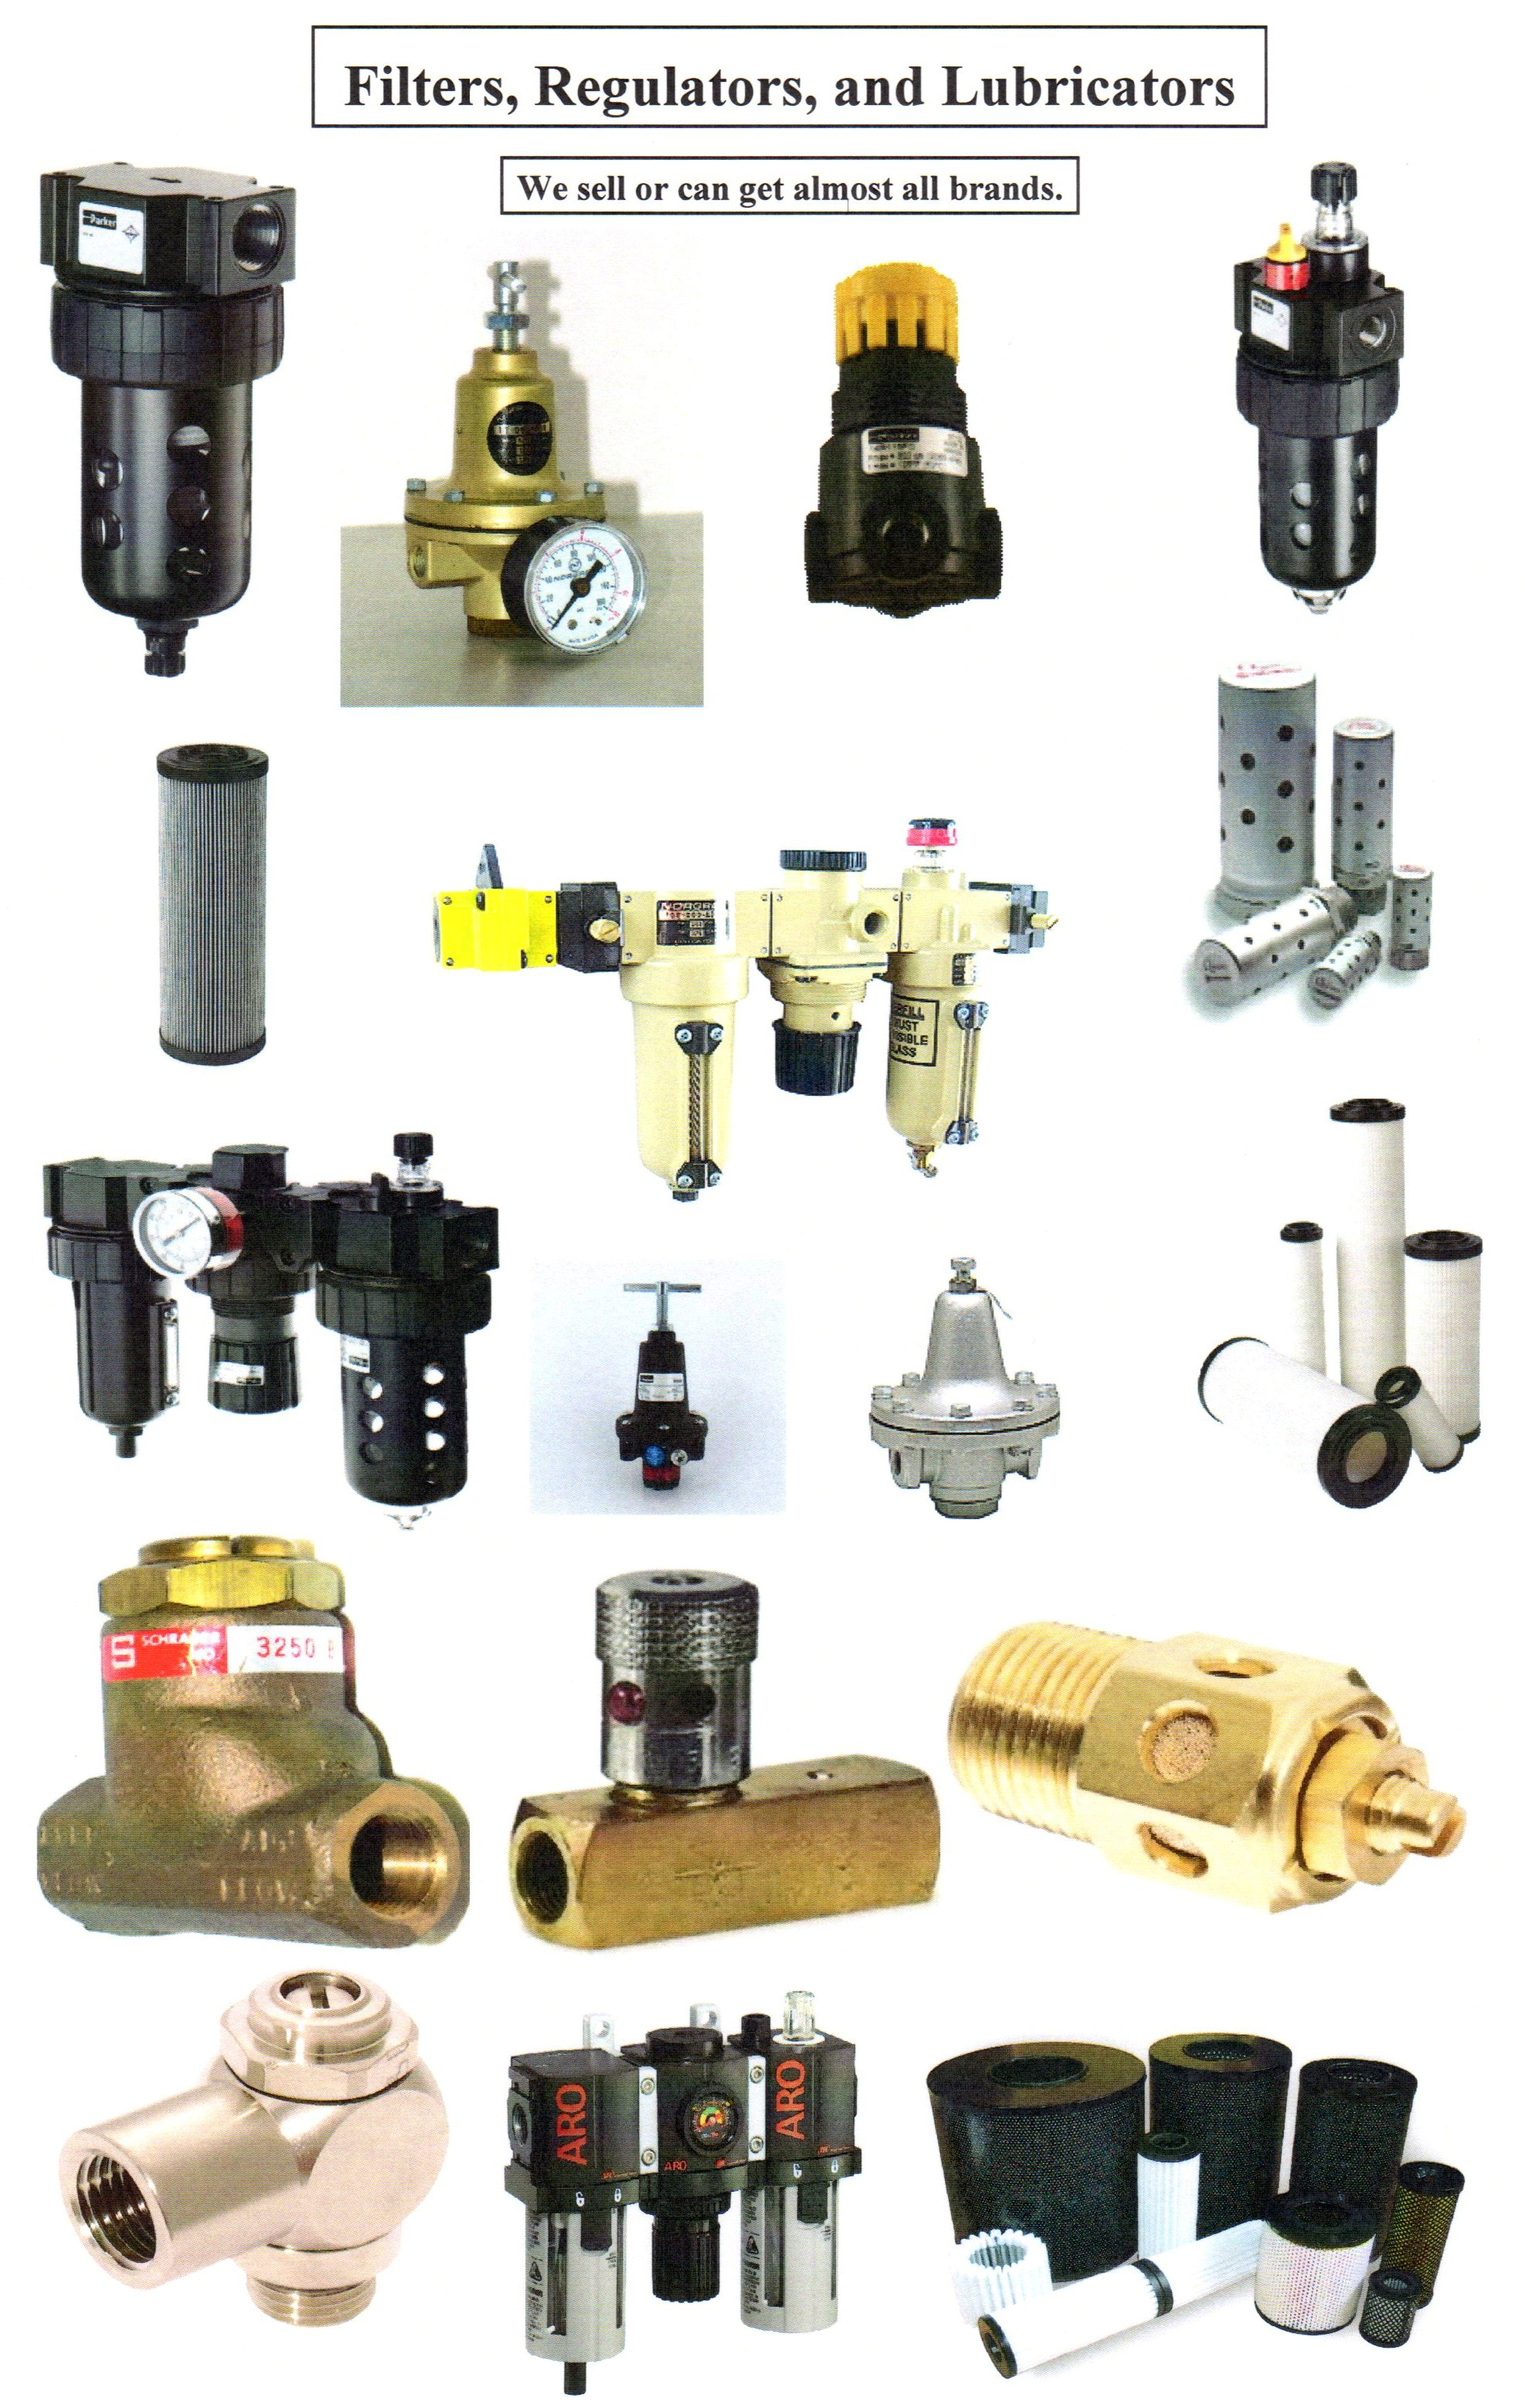 FRL'S, Filters, Regulators, Lubricators